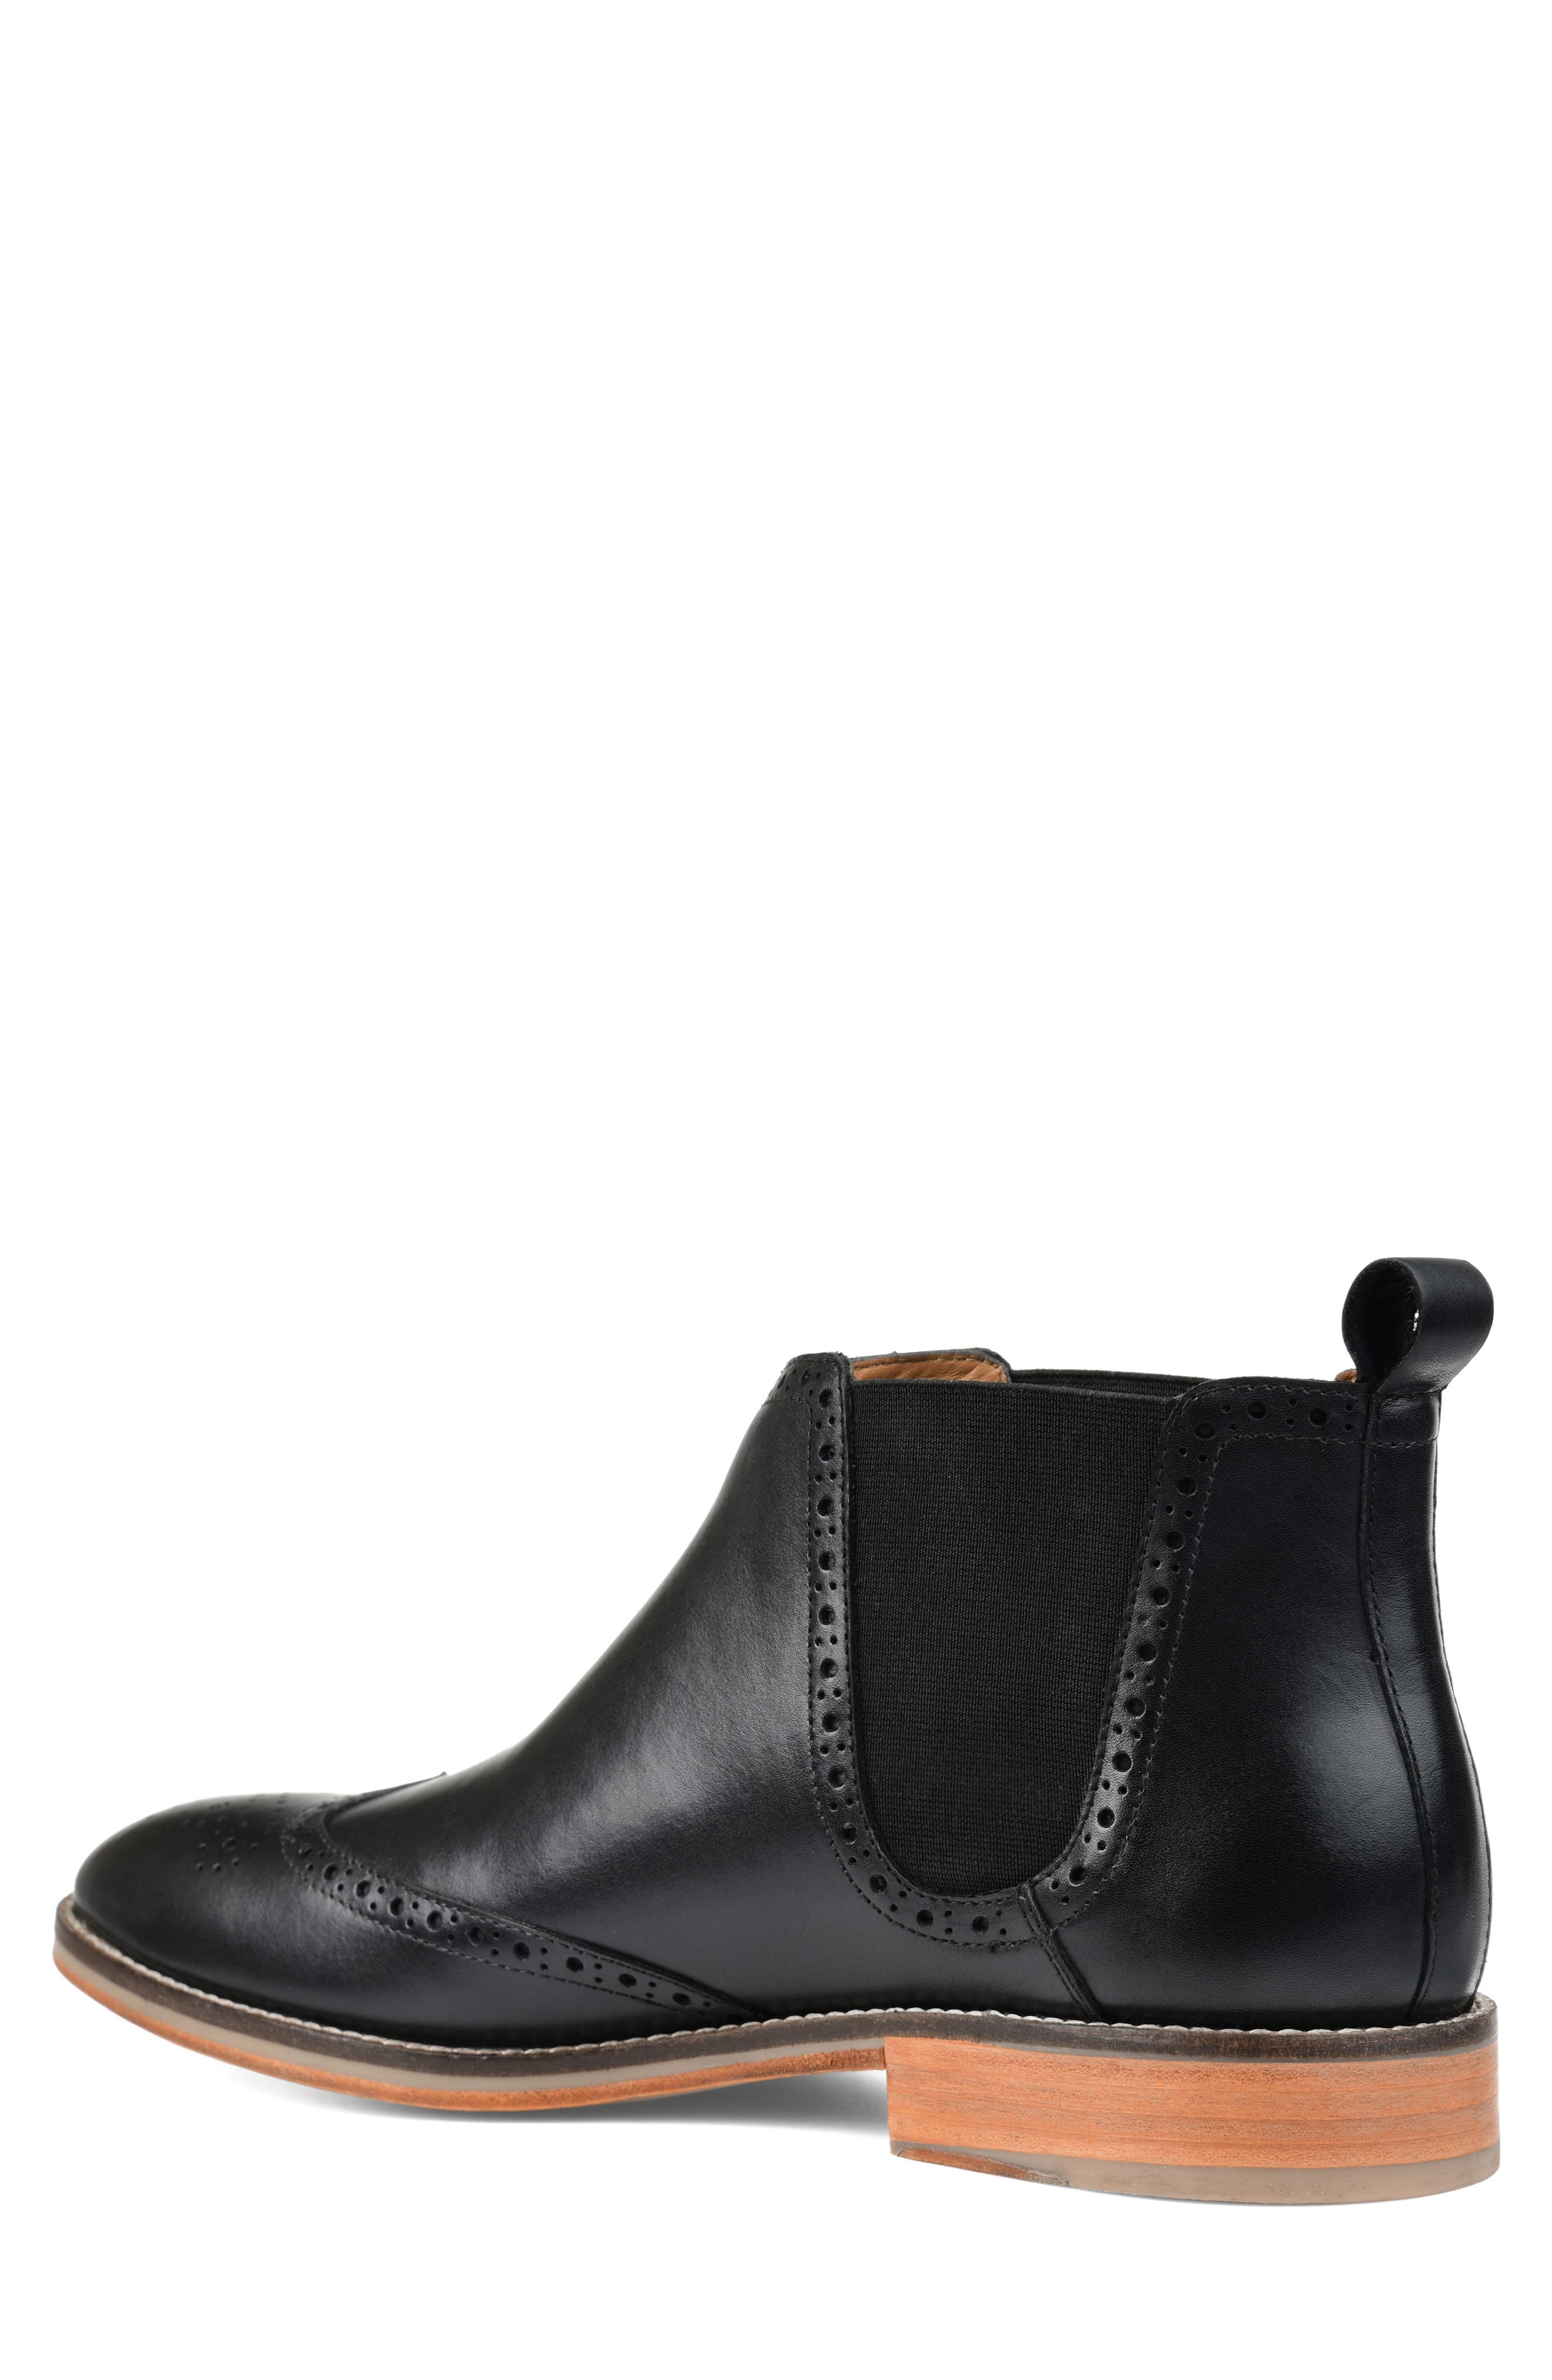 THOMAS AND VINE, Thorne Wingtip Chelsea Boot, Alternate thumbnail 2, color, BLACK LEATHER